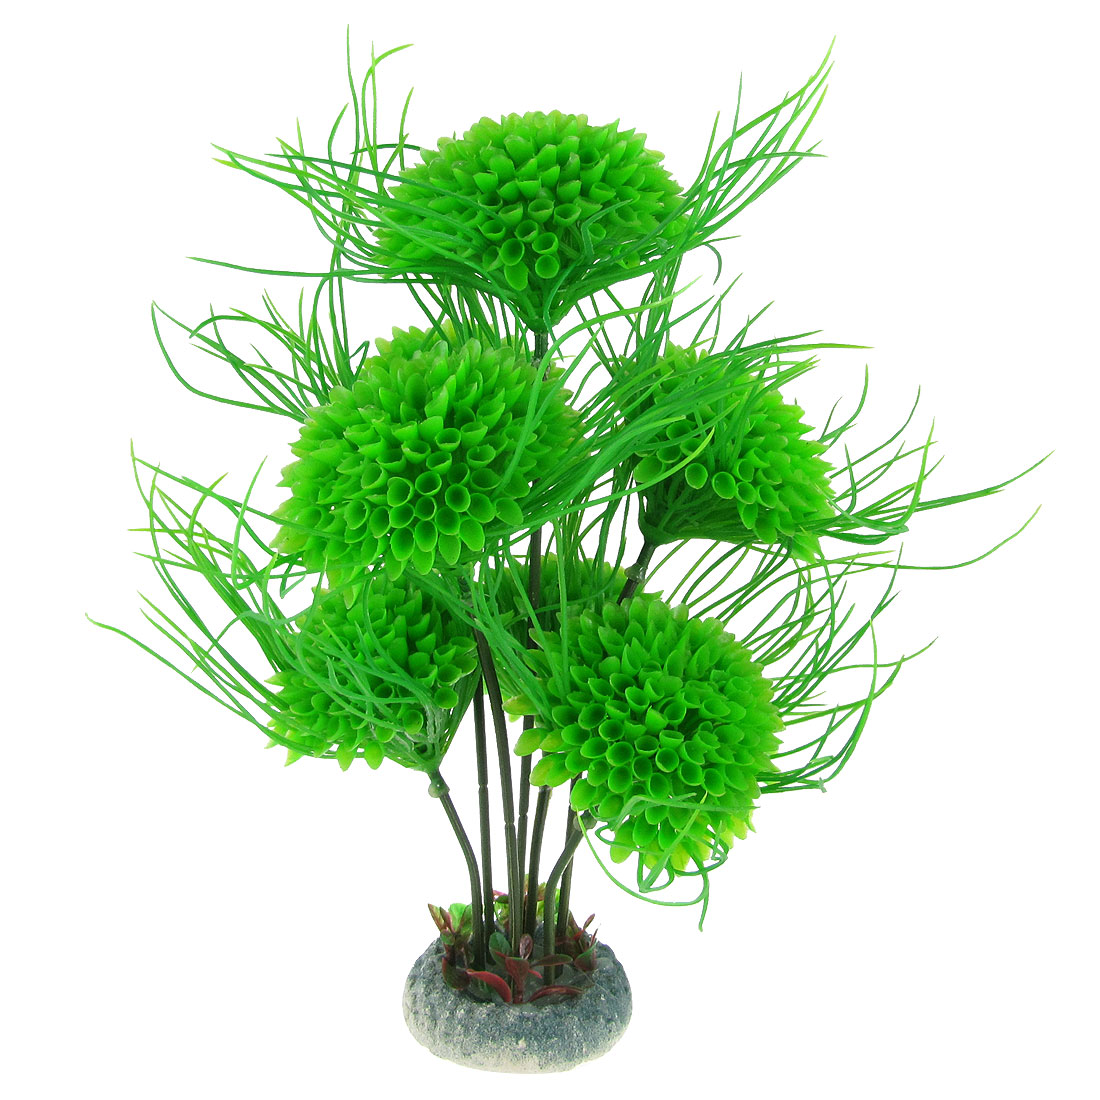 "10.6"" High Fish Tank Green Plastic 7 Flower Balls Plant Decor Aquascaping w Round Base"